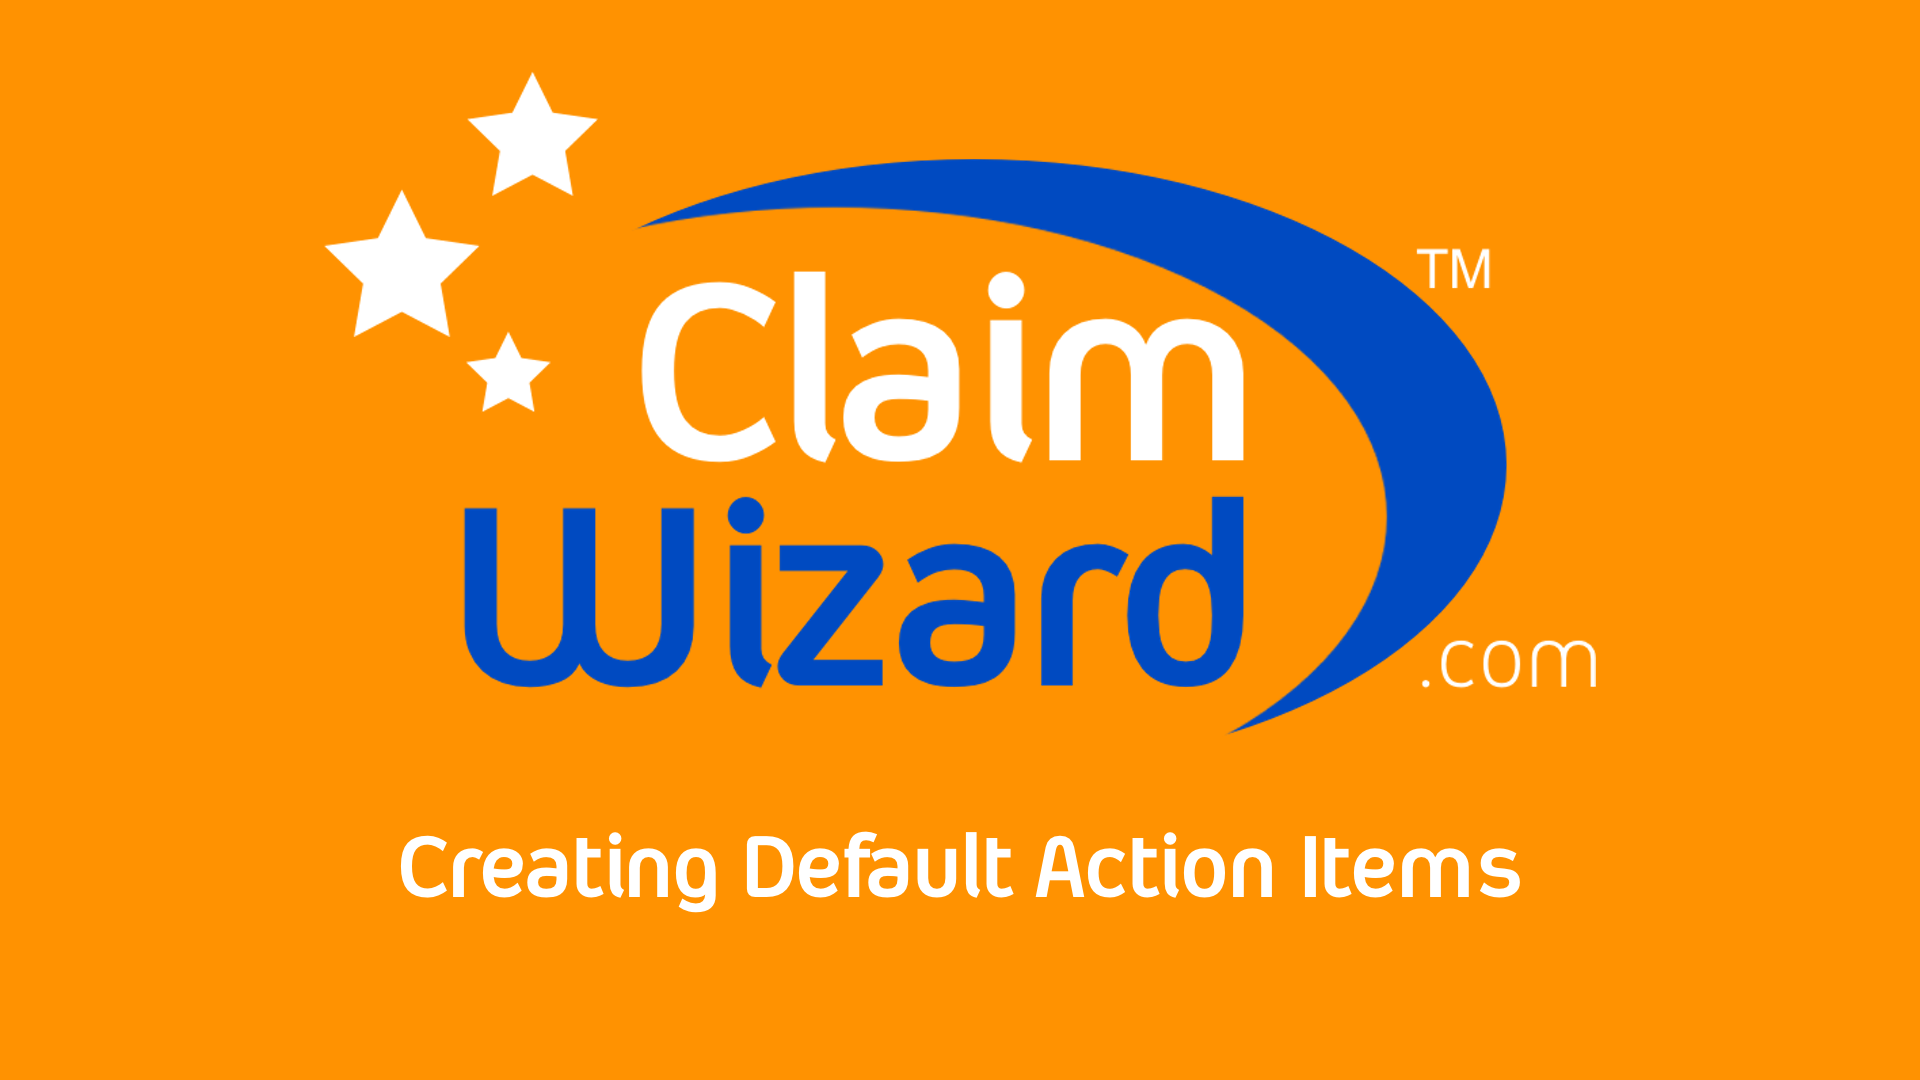 Create Default Action Items